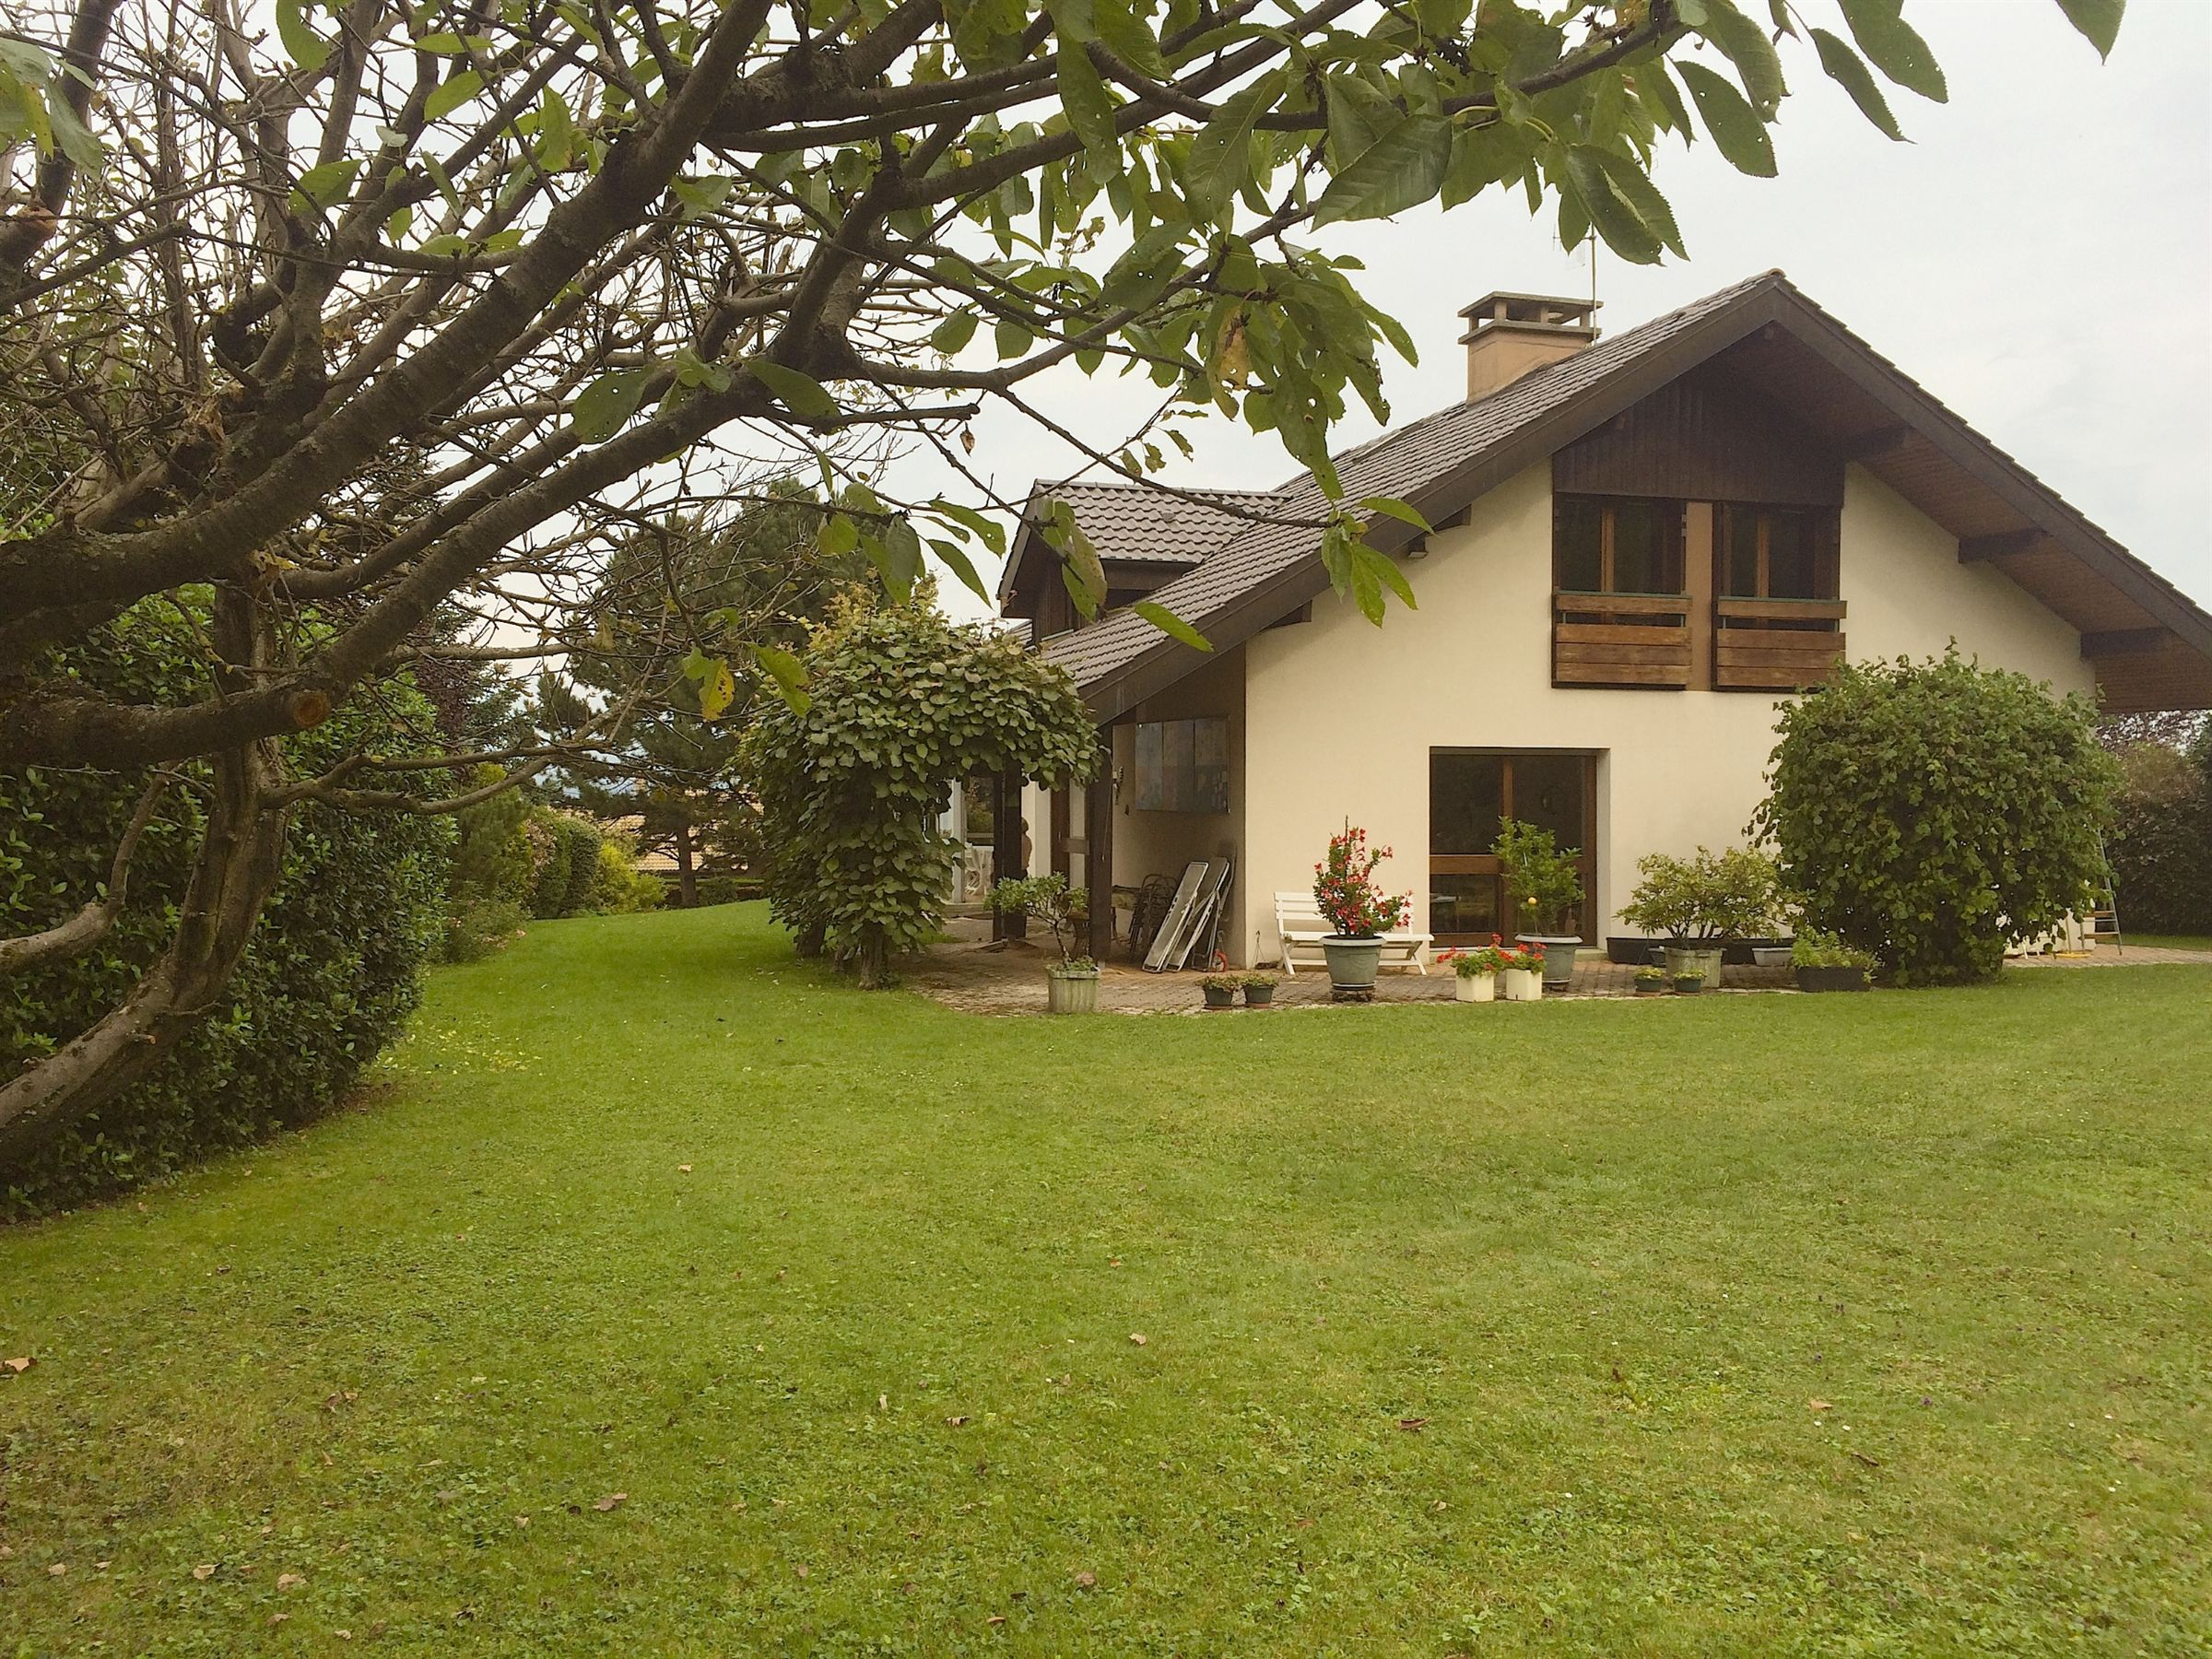 Single Family Home for Sale at Evian : villa on the golf Publier, Rhone-Alpes 74500 France